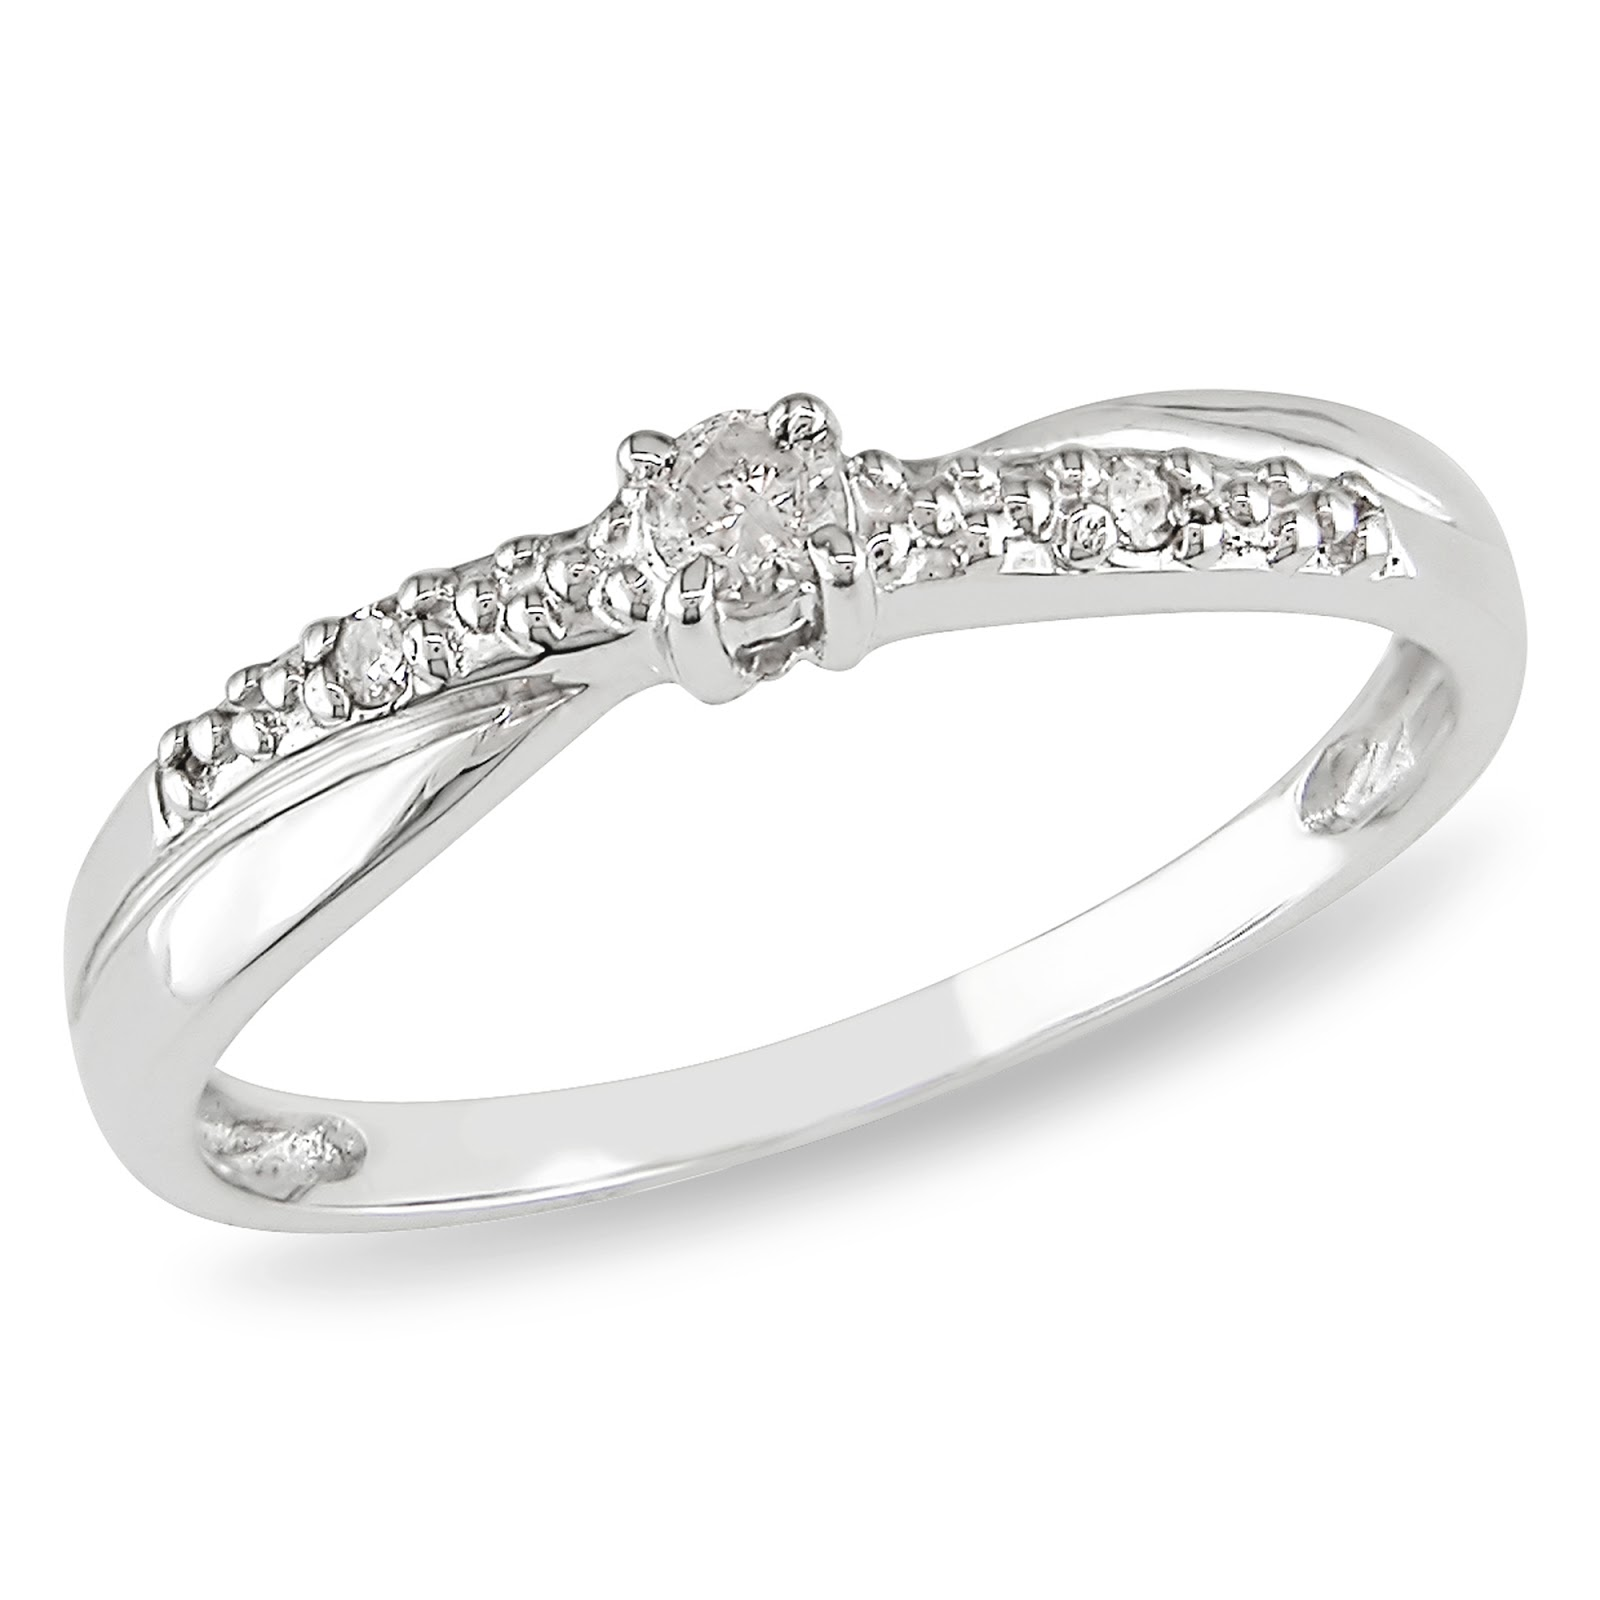 What Is The Promise Ring For Girls Mean Ring Review